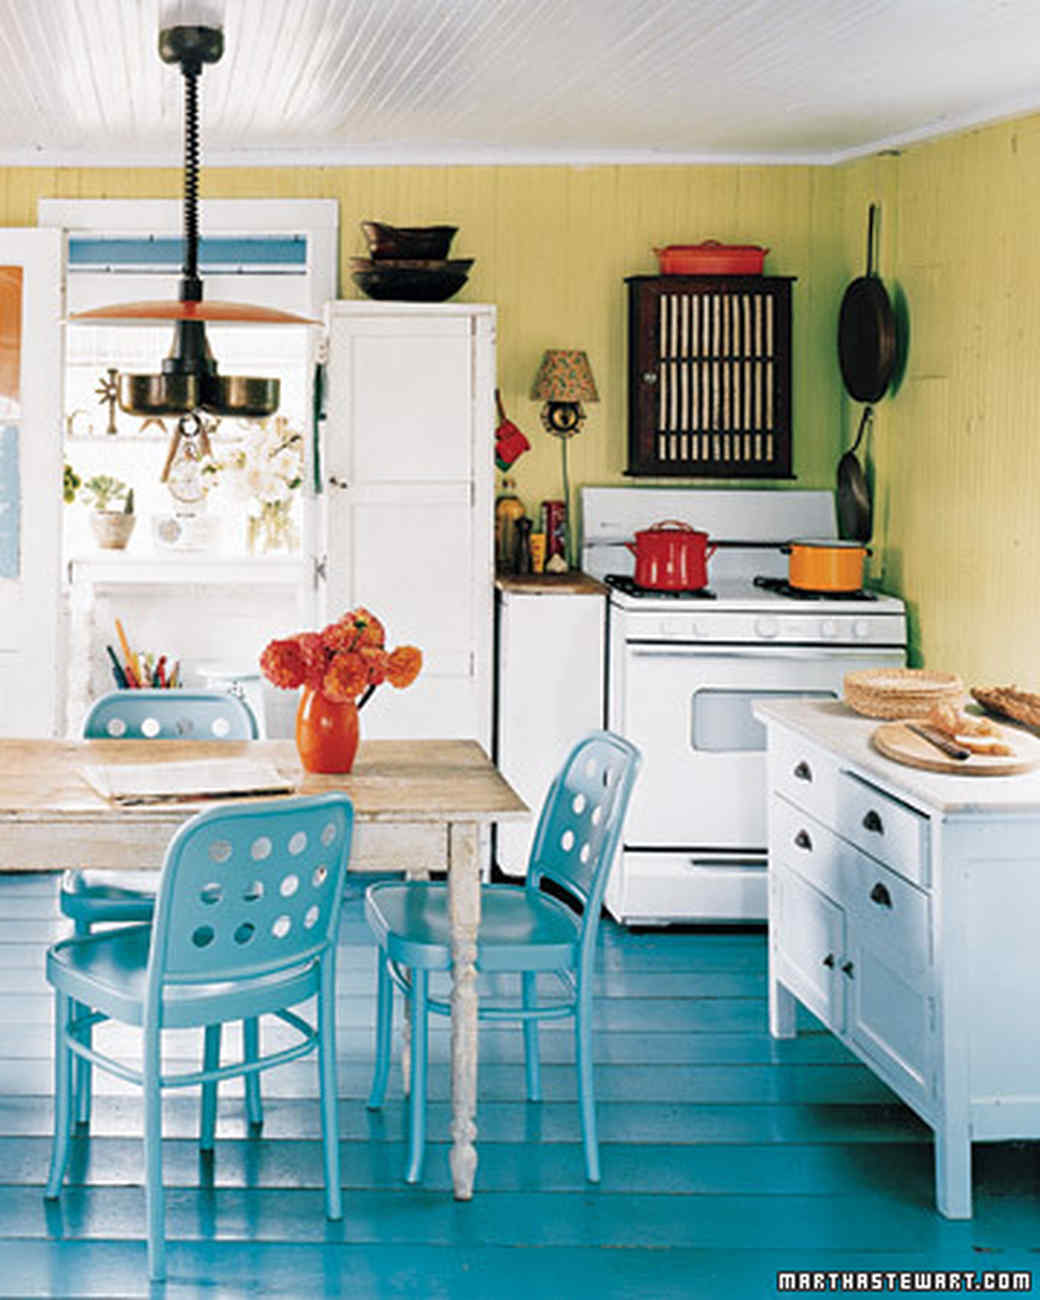 Our Favorite Kitchens | Martha Stewart